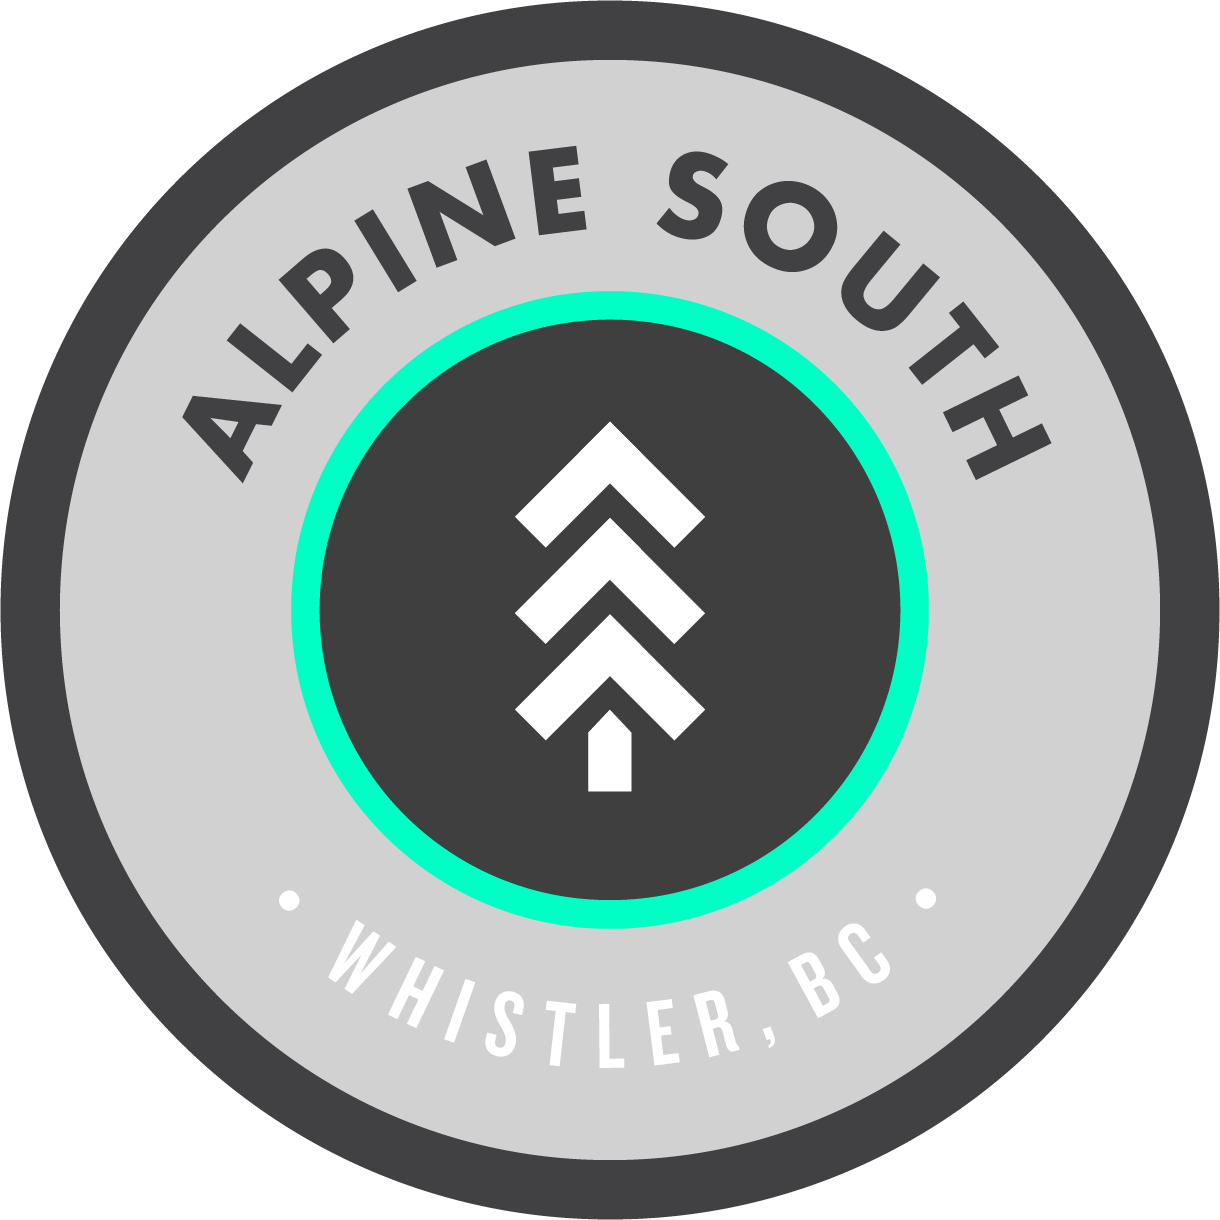 Whistler Accommodation - Alpine South